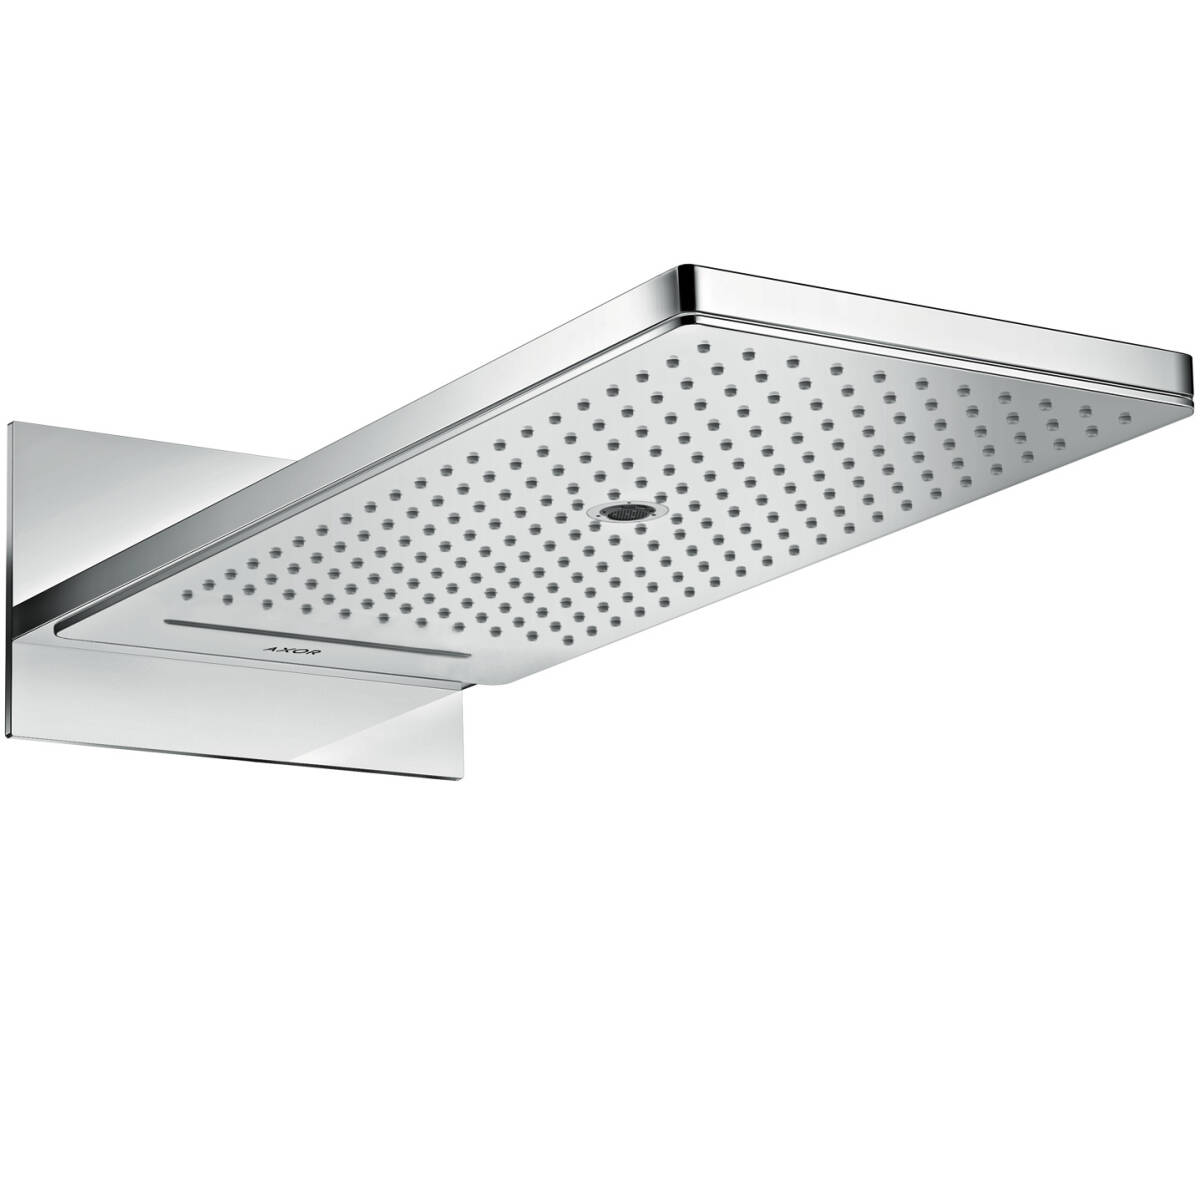 Overhead shower 250/580 3jet, Chrome, 35283000